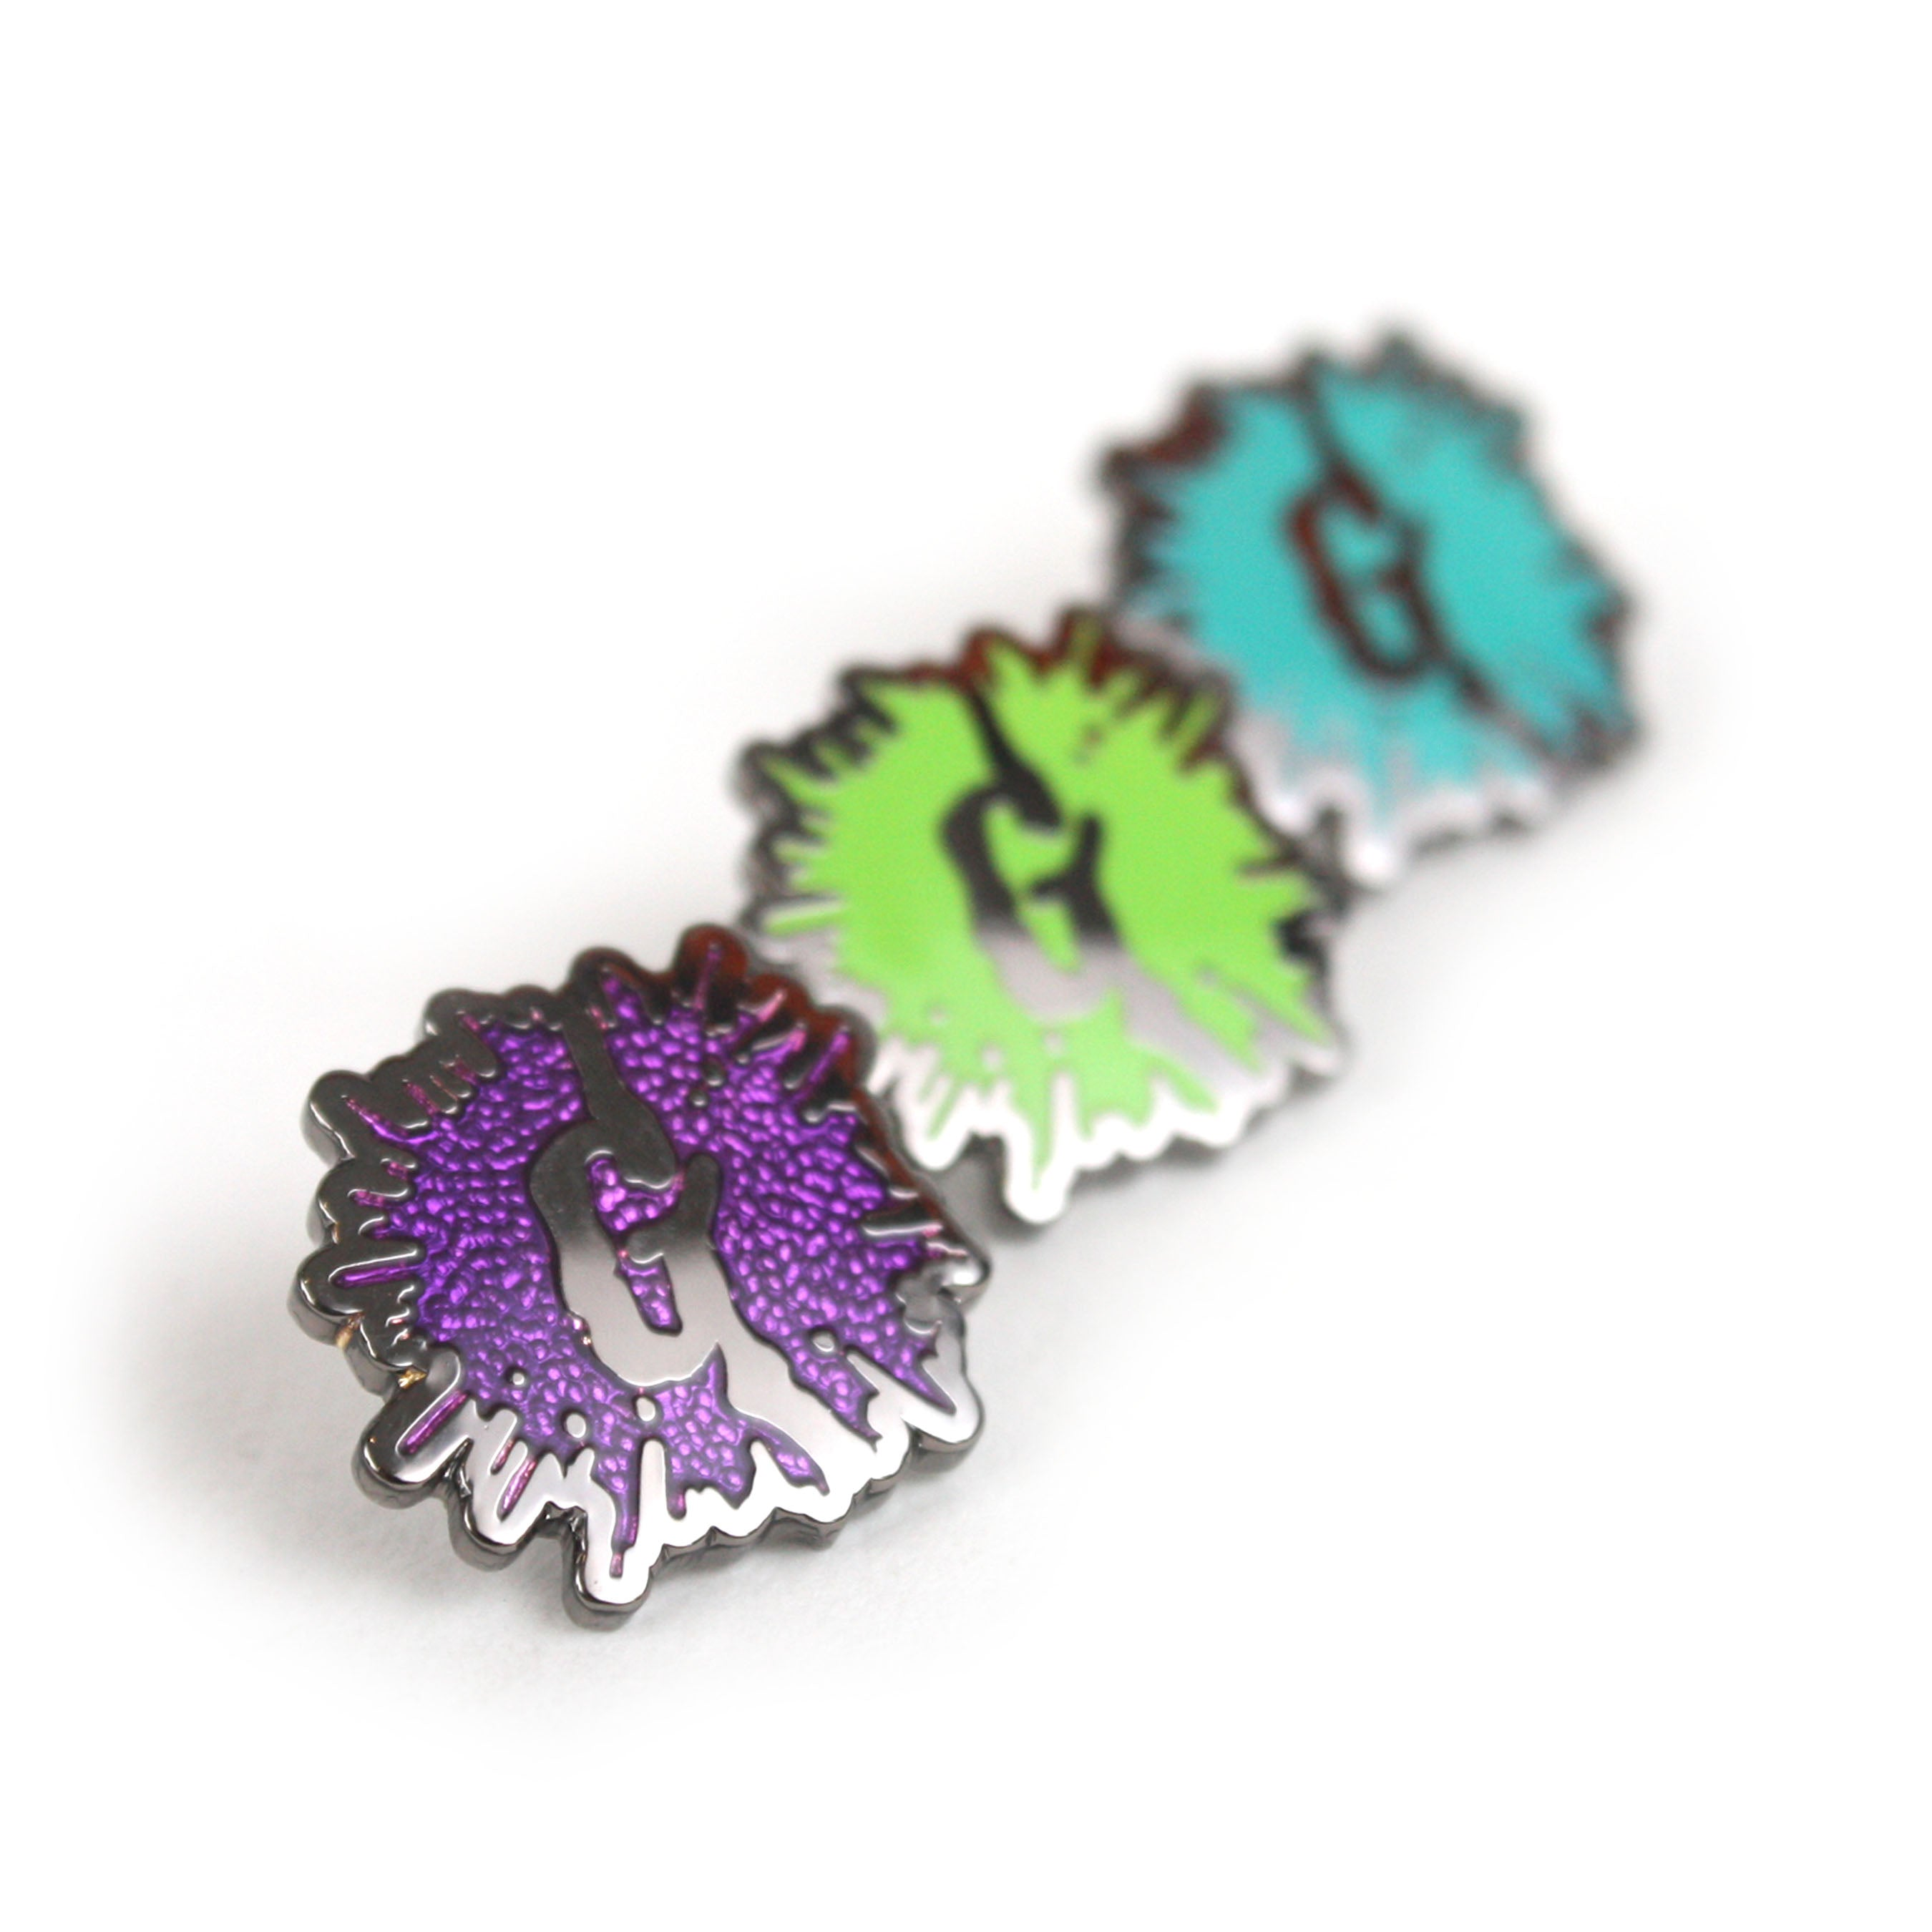 Goosebumps Splat! Enamel Pin Set